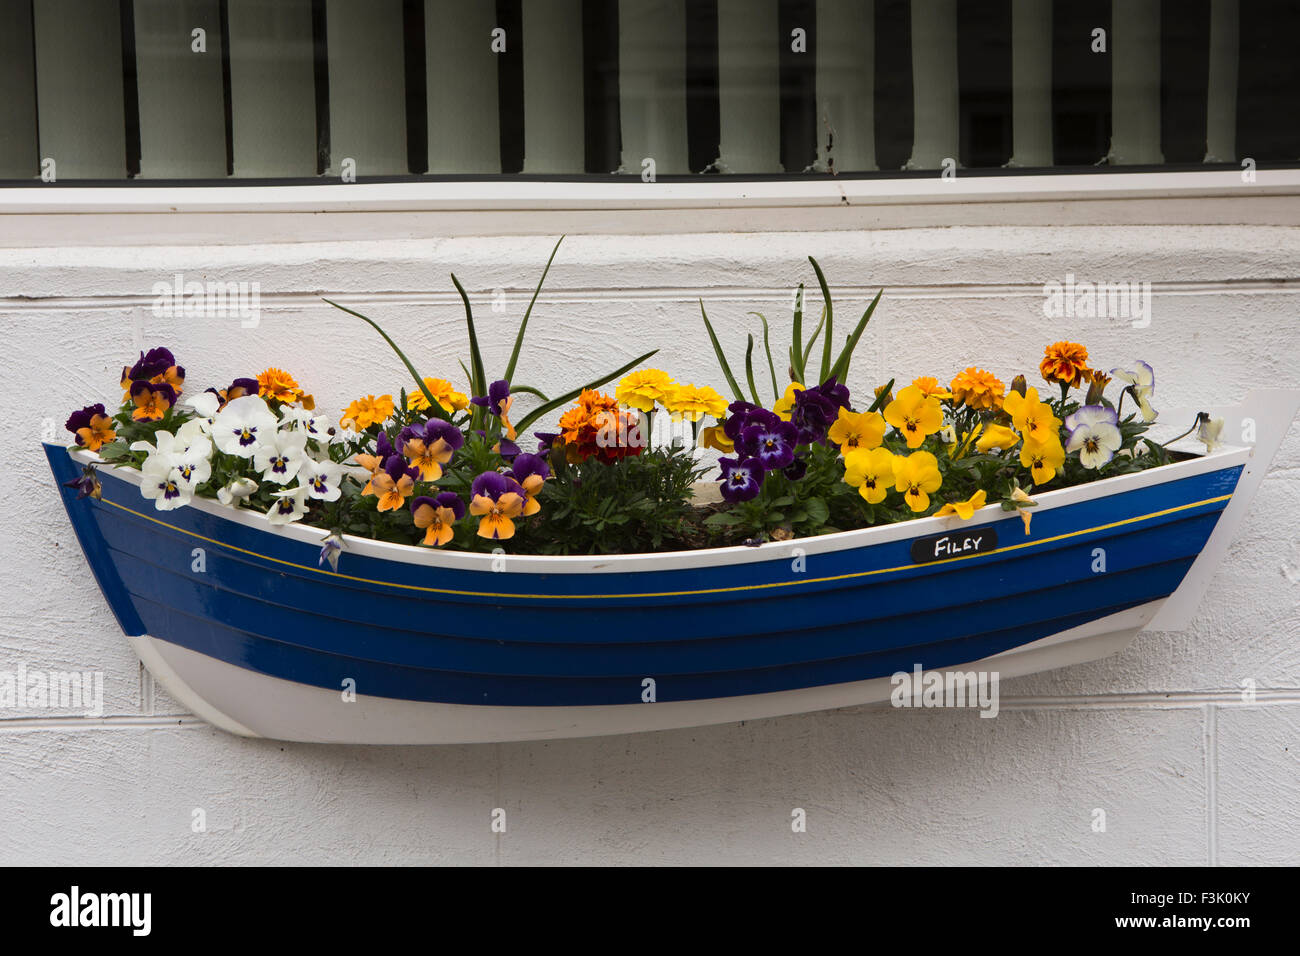 Flower planter boat stock photos flower planter boat for Boat mailbox